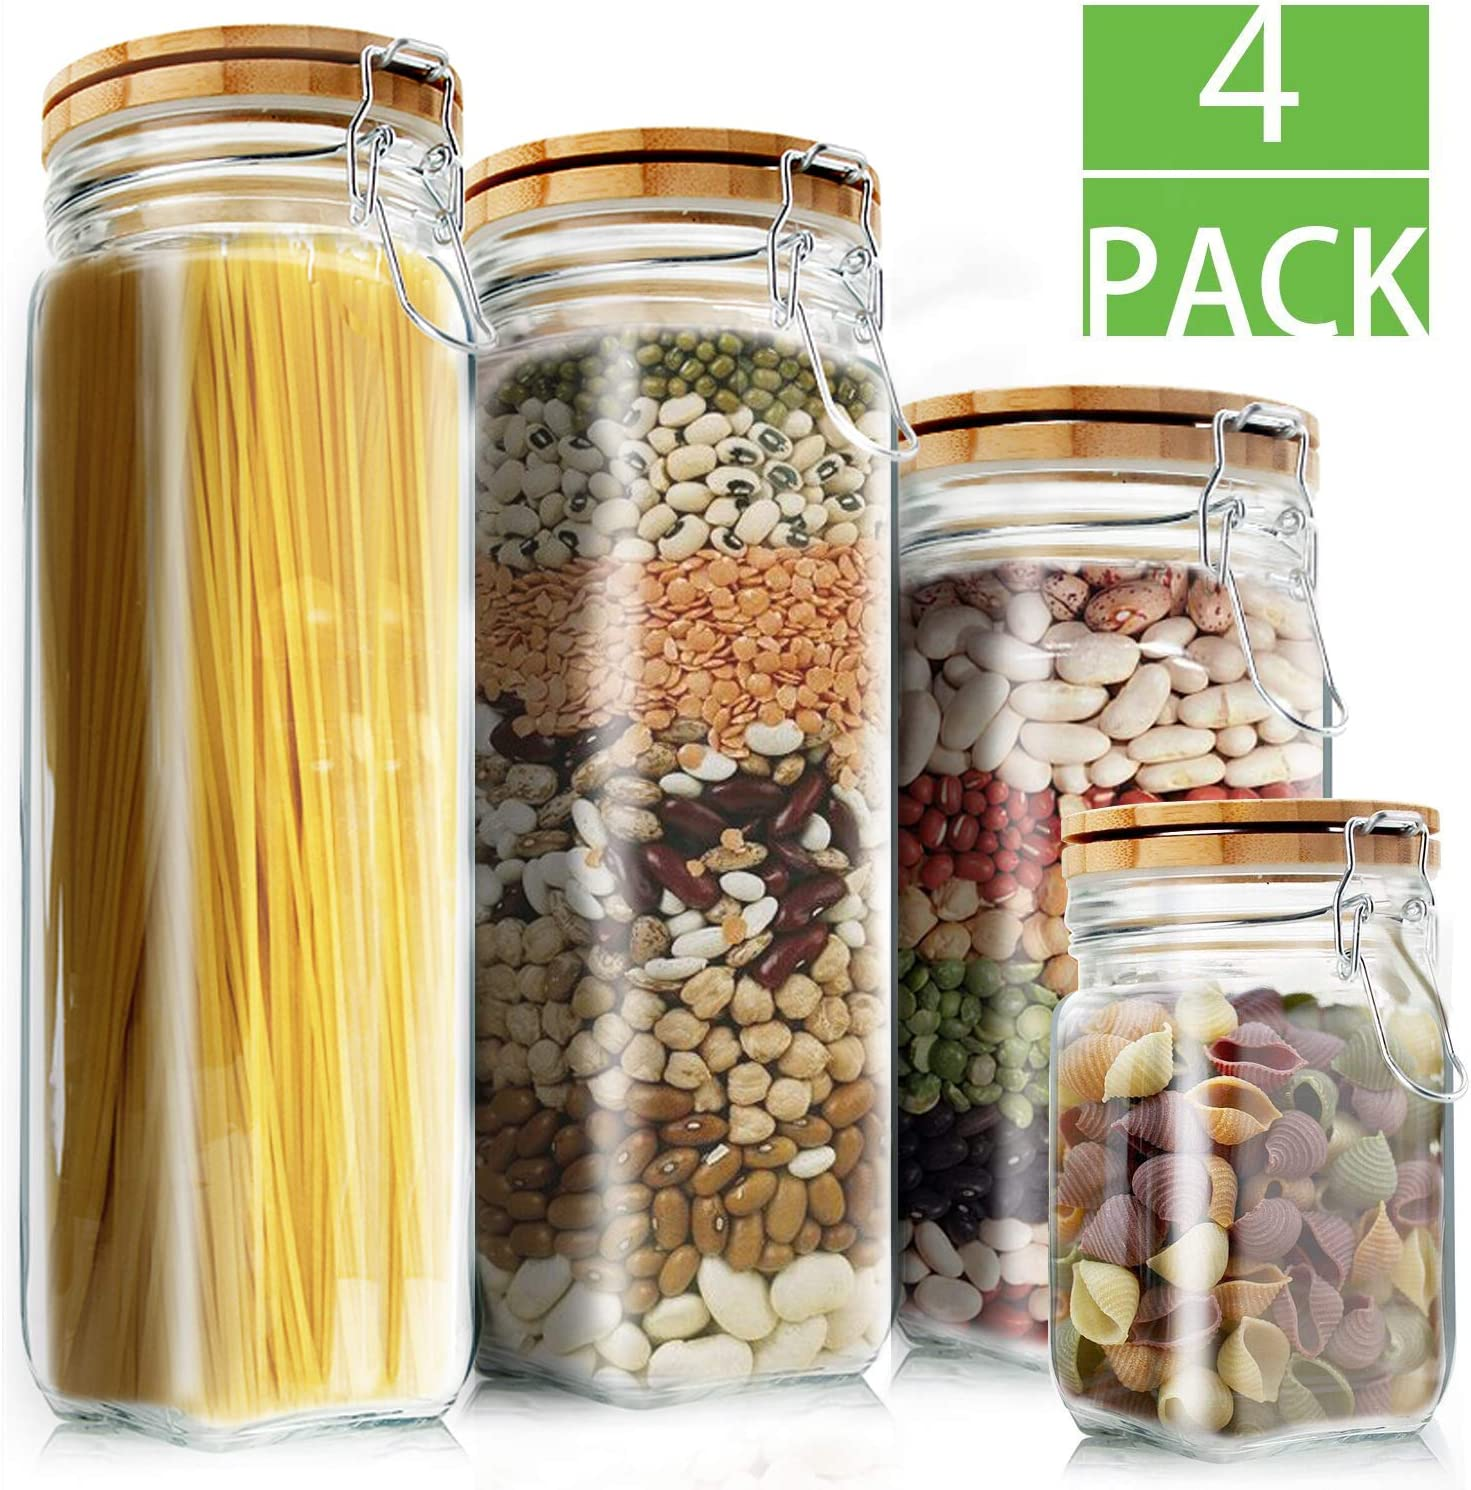 Eco friendly kitchen products: large glass containers